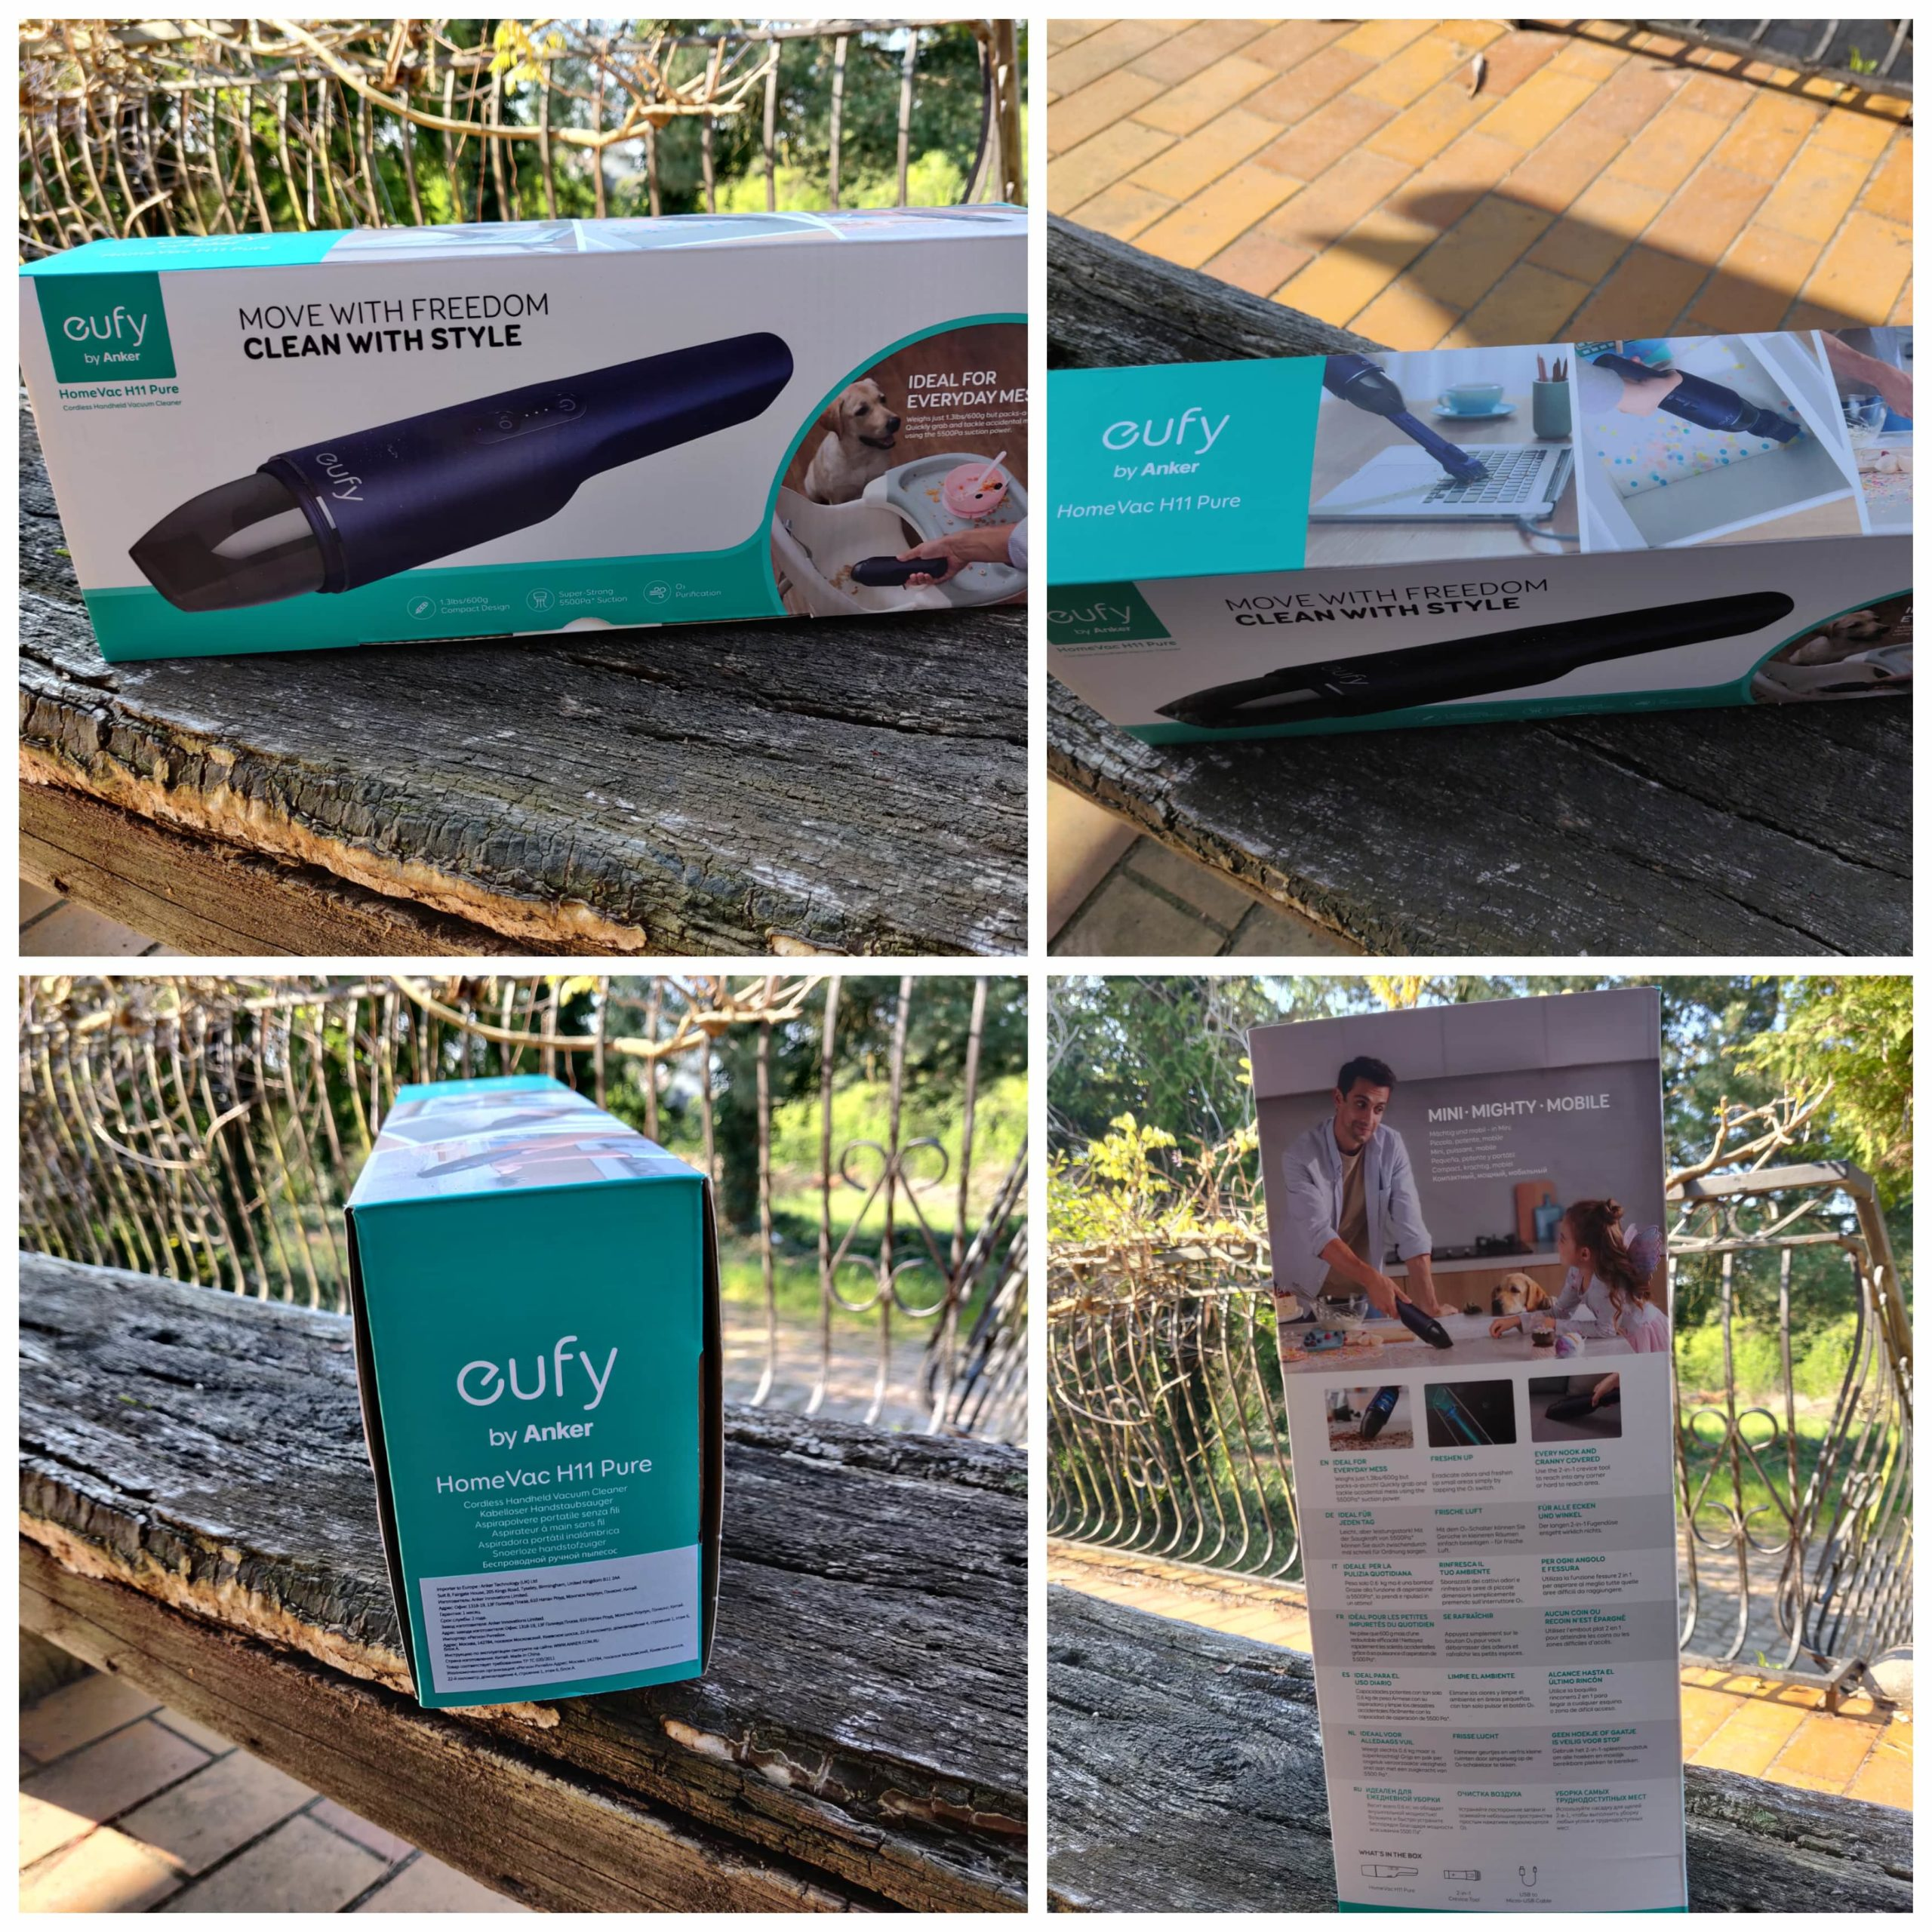 Eufy by Anker HomeVac H11 unboxing